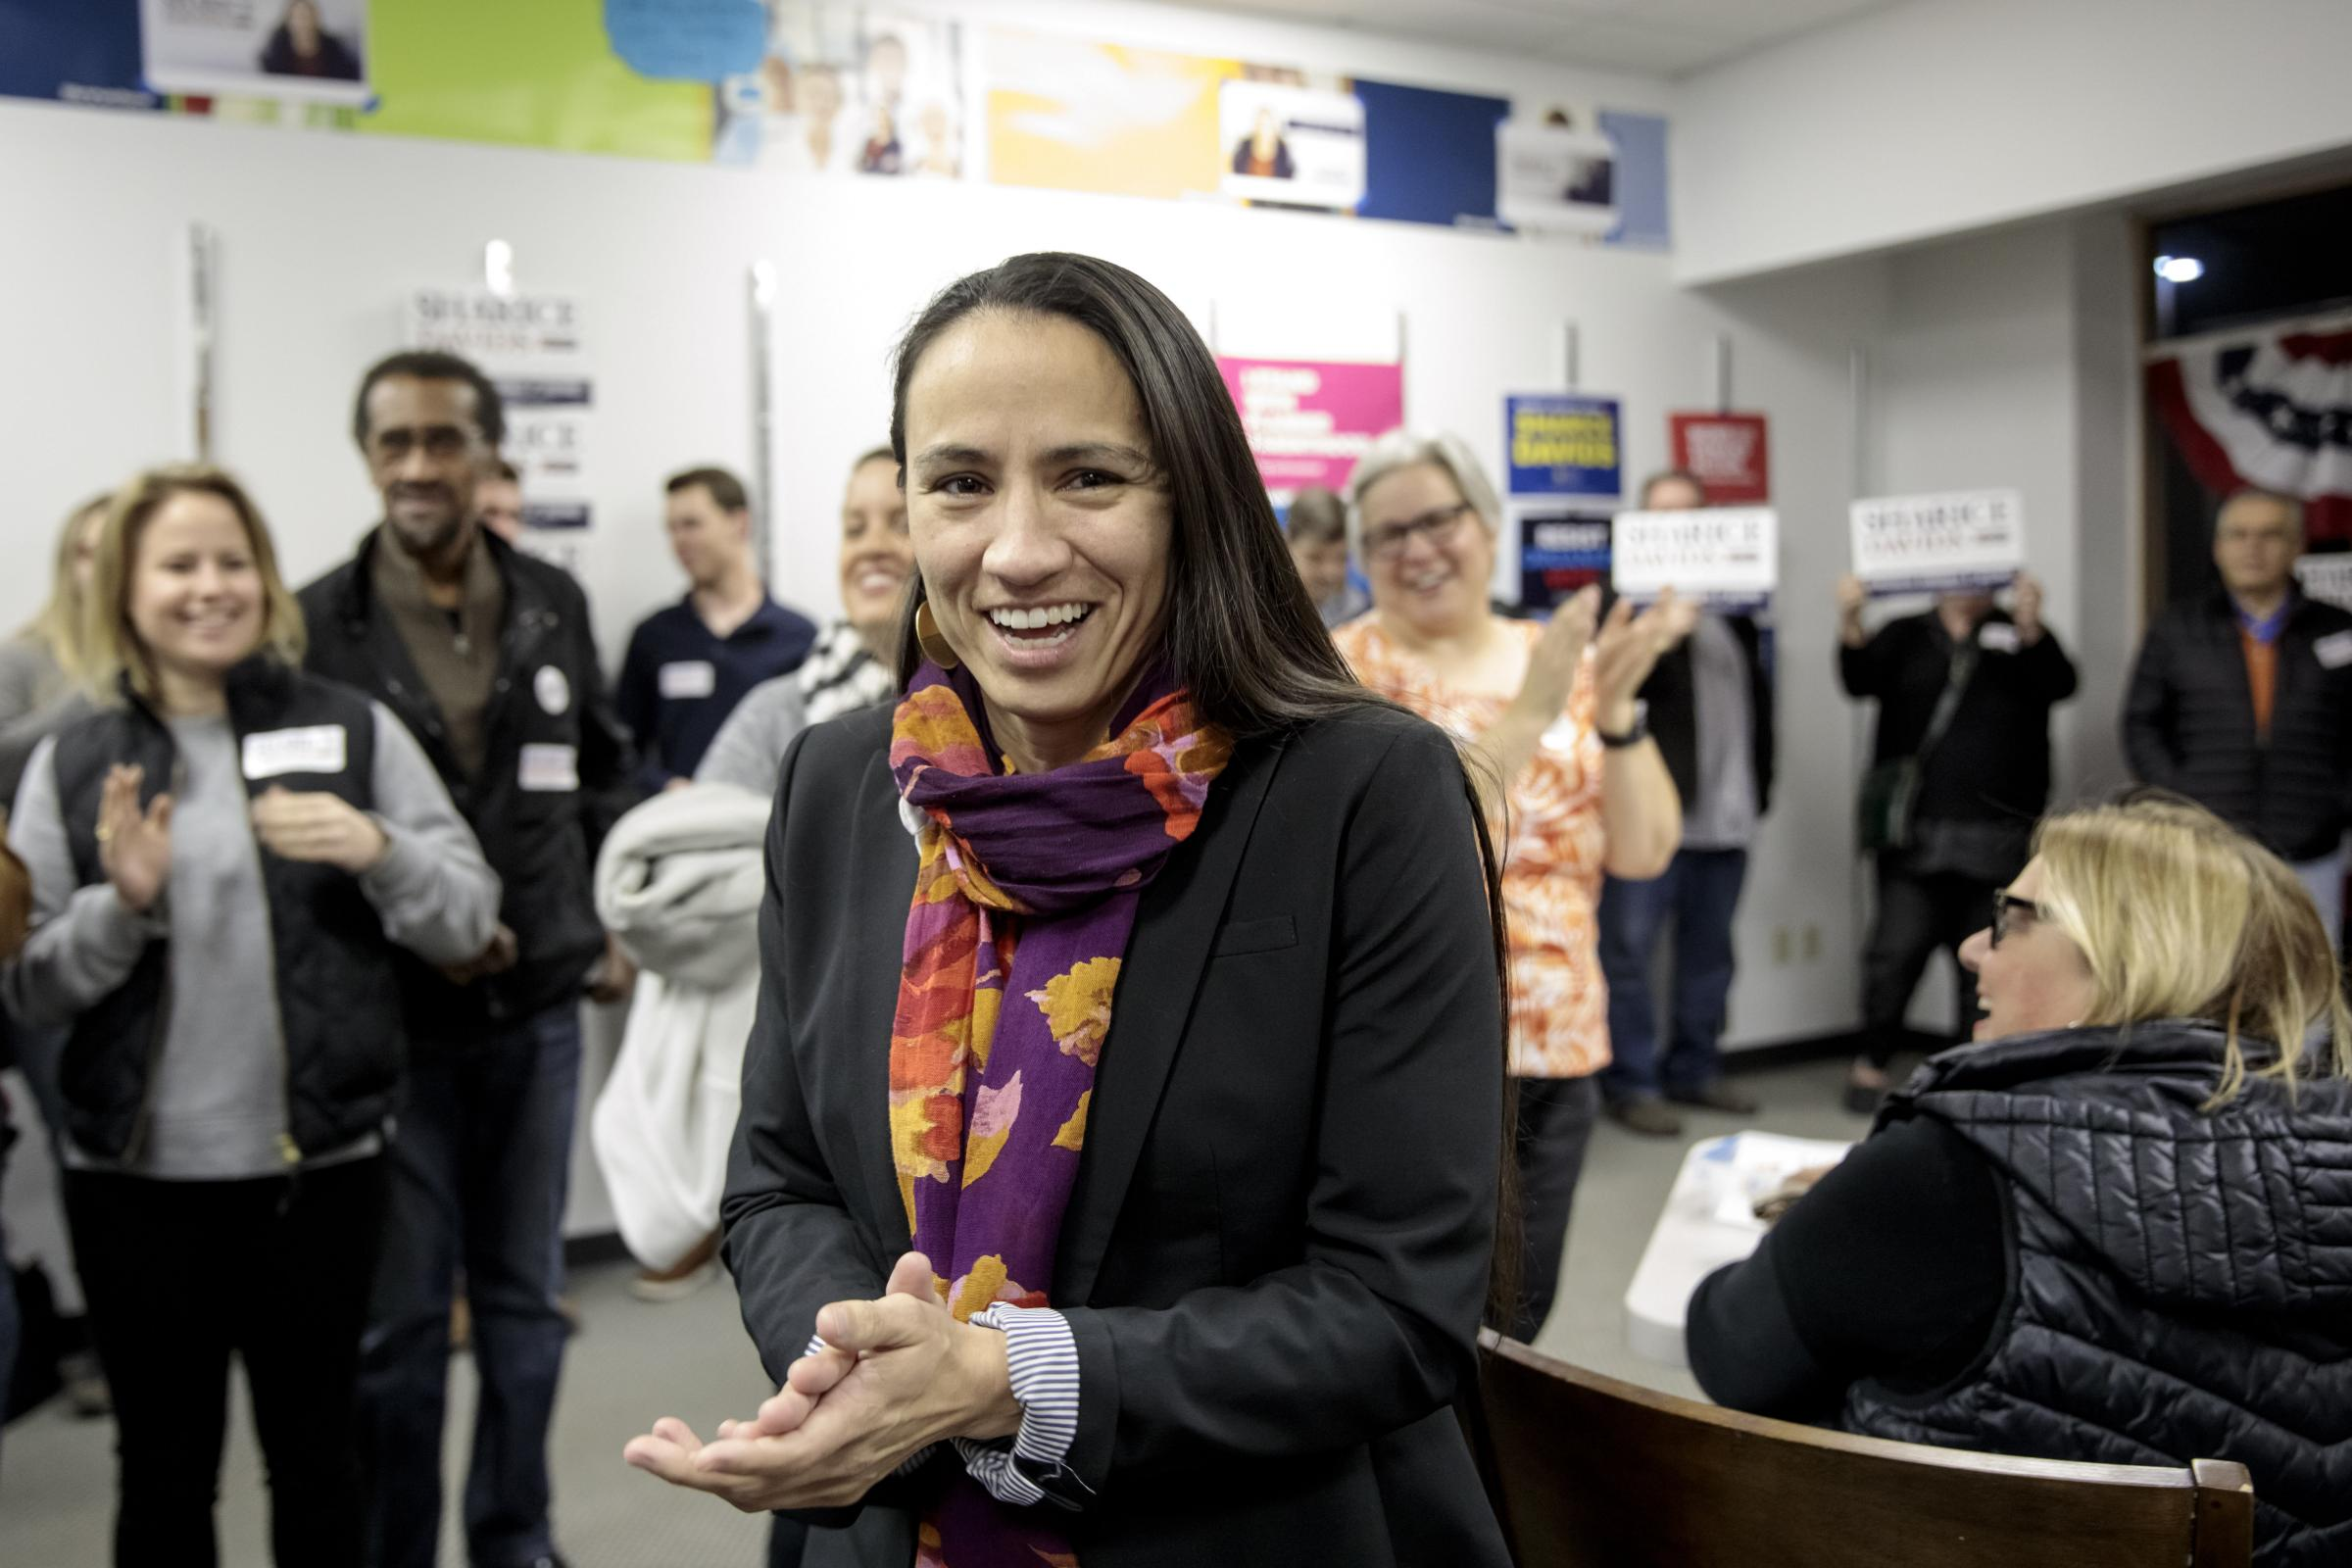 Sharice Davids of Kansas has been elected to the House of Representatives